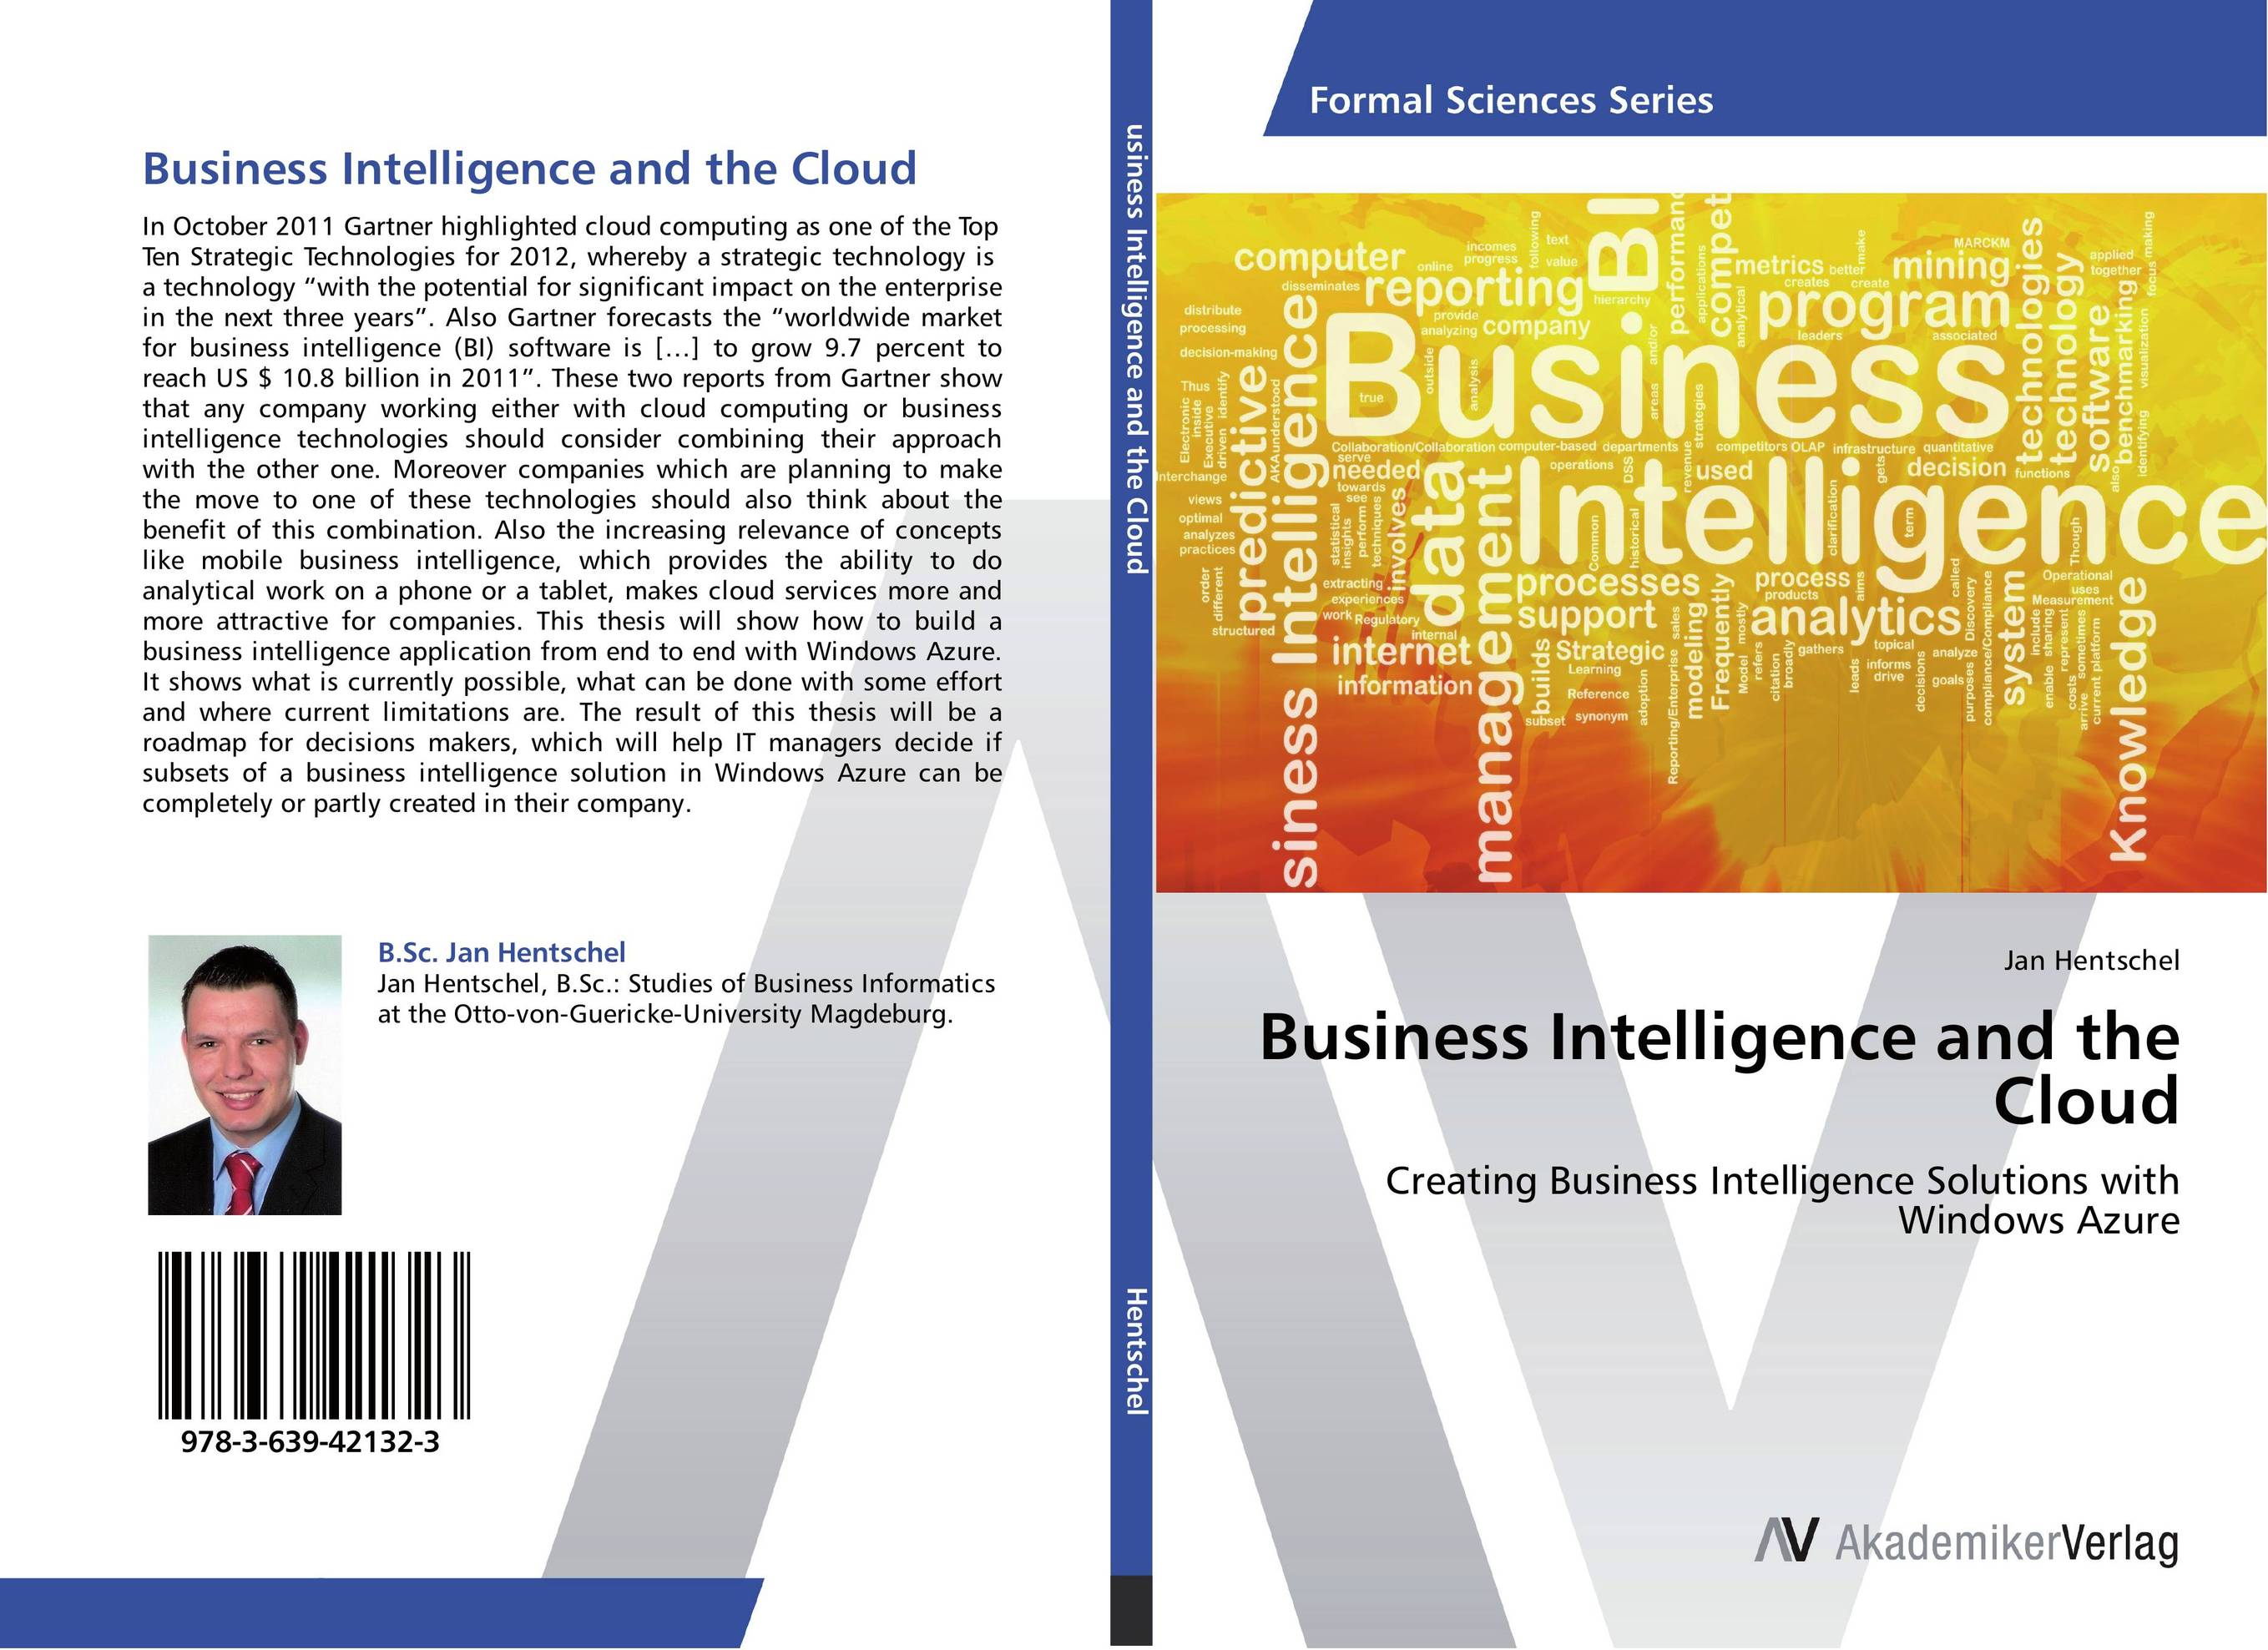 Business Intelligence and the Cloud seena sharp competitive intelligence advantage how to minimize risk avoid surprises and grow your business in a changing world